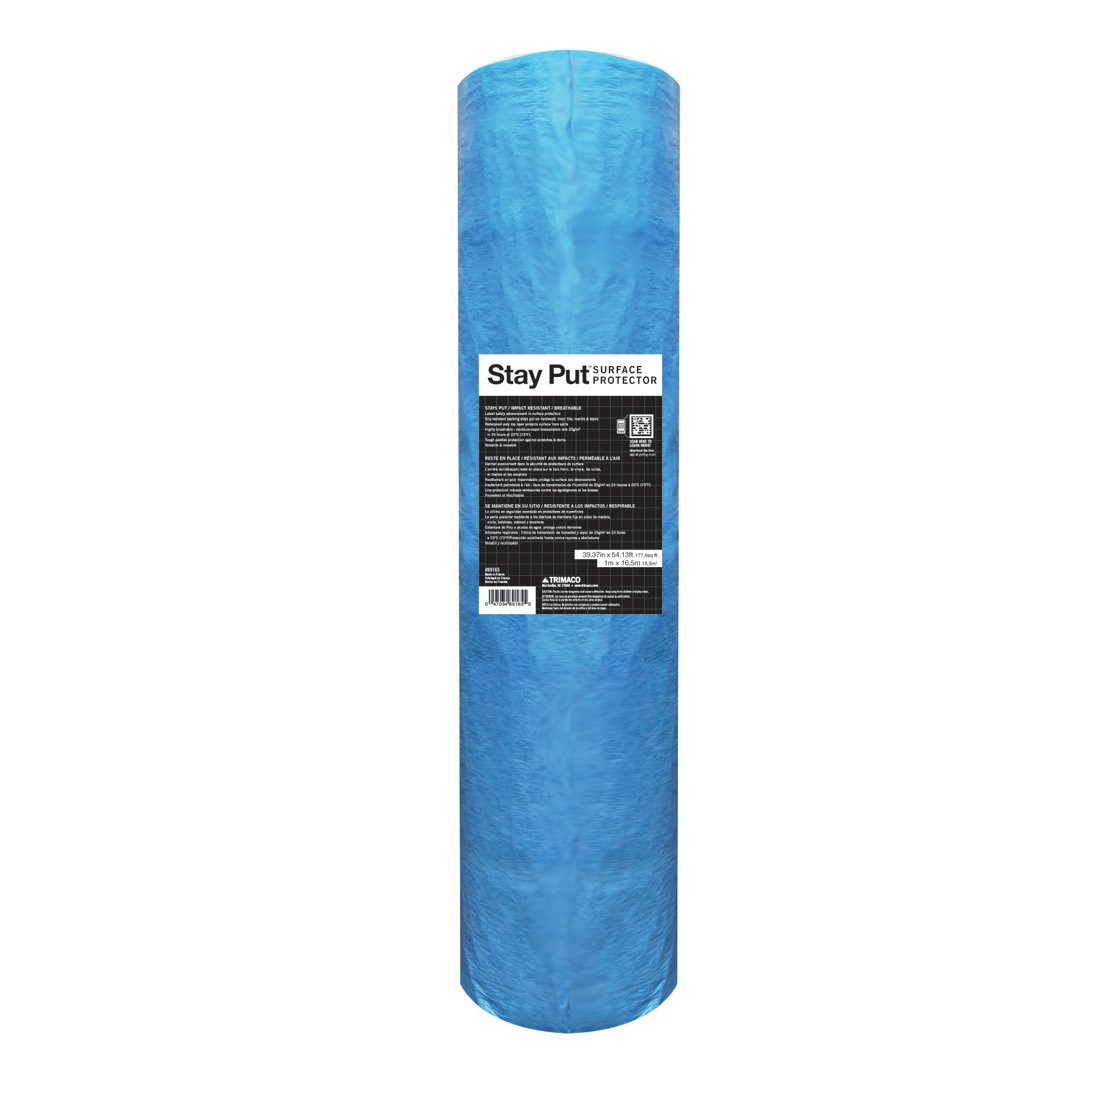 Trimaco stay put surface protector